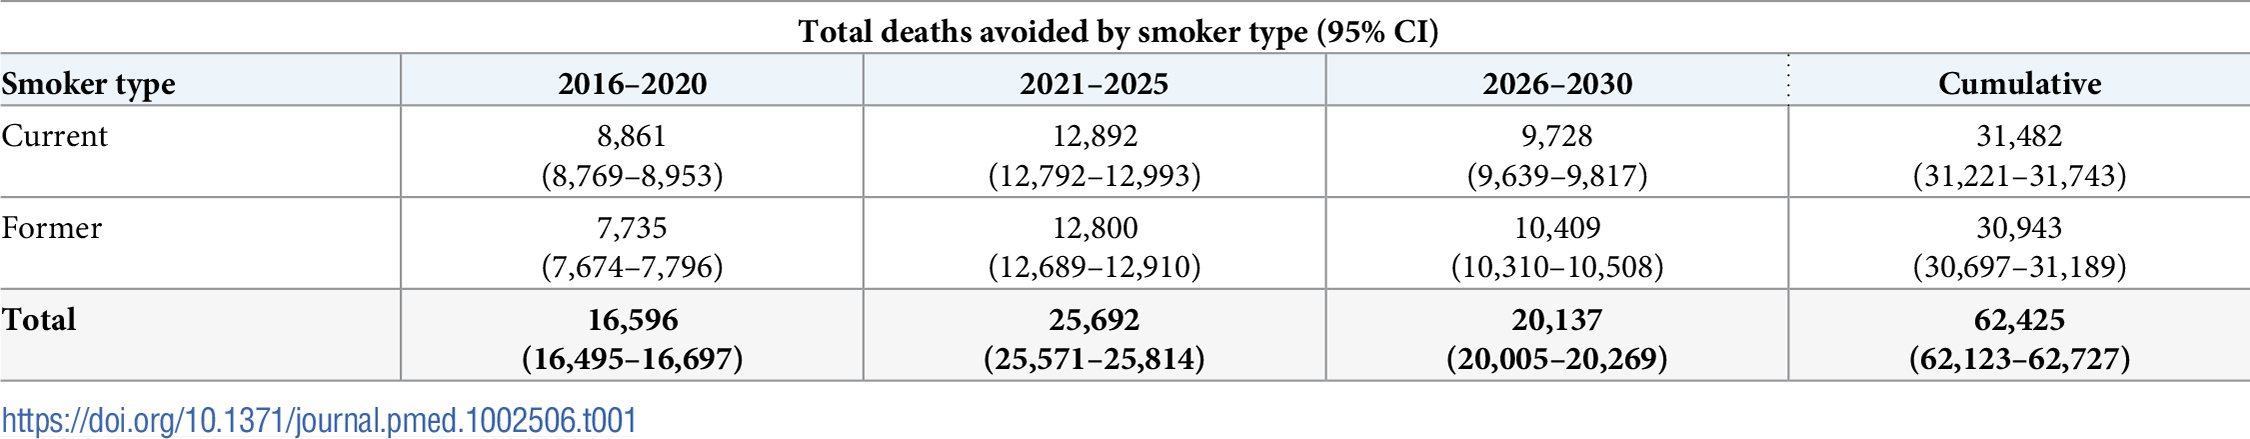 Estimated deaths avoided for current and former smokers compared to total population, 2016–2030.